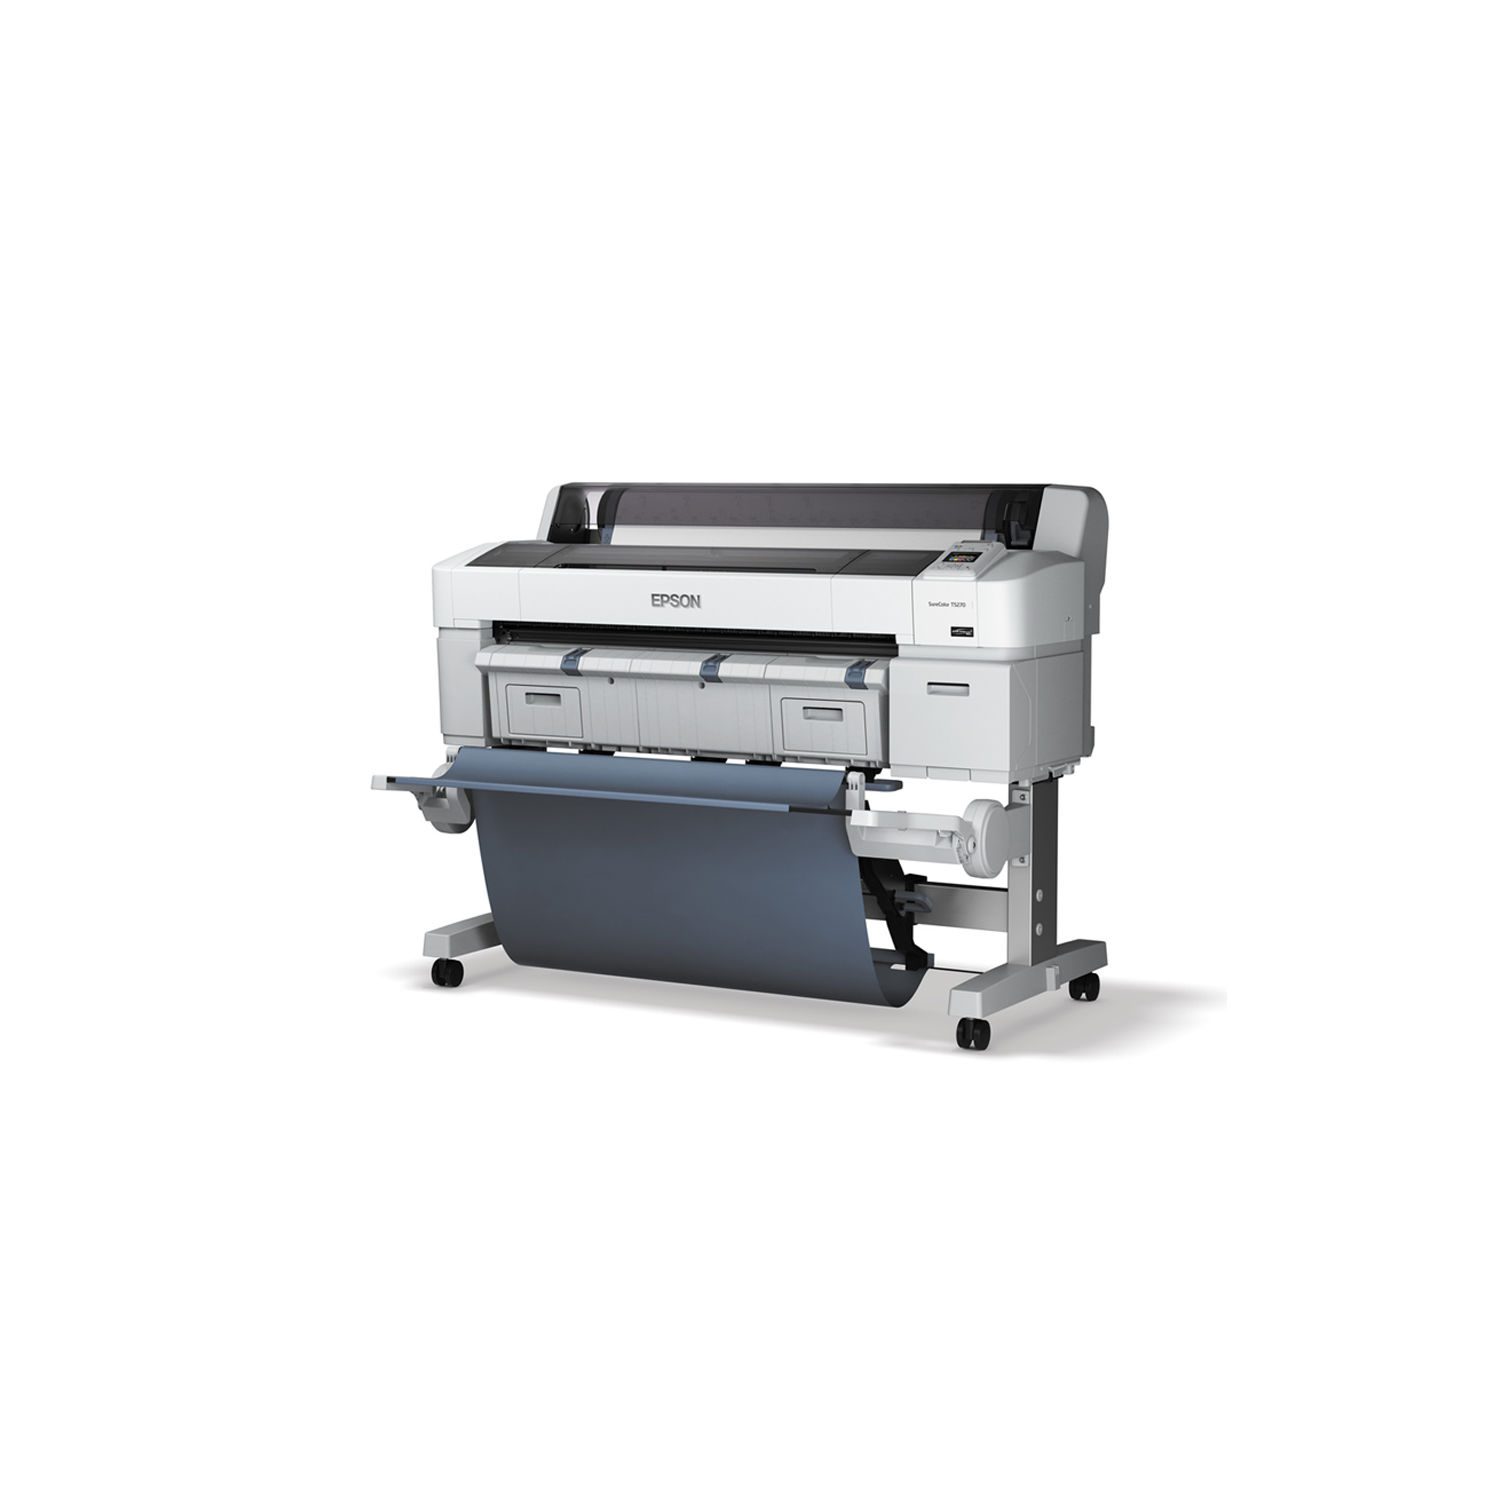 "Stand for SC-T5270 24"" Plotter"